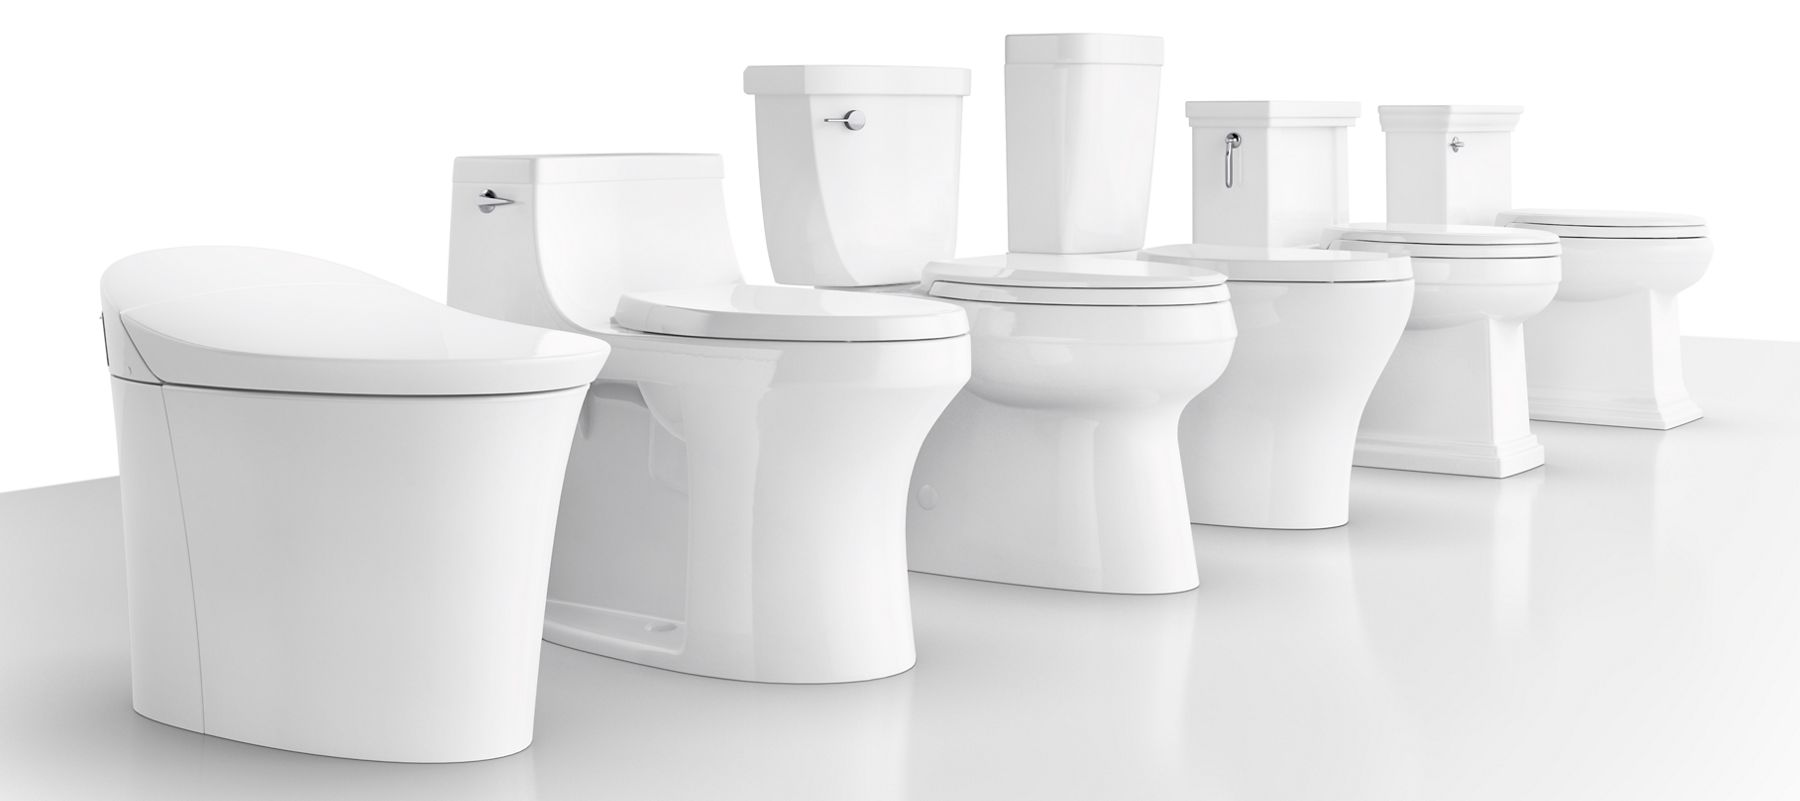 Shop All Toilets Kohler Com Kohler